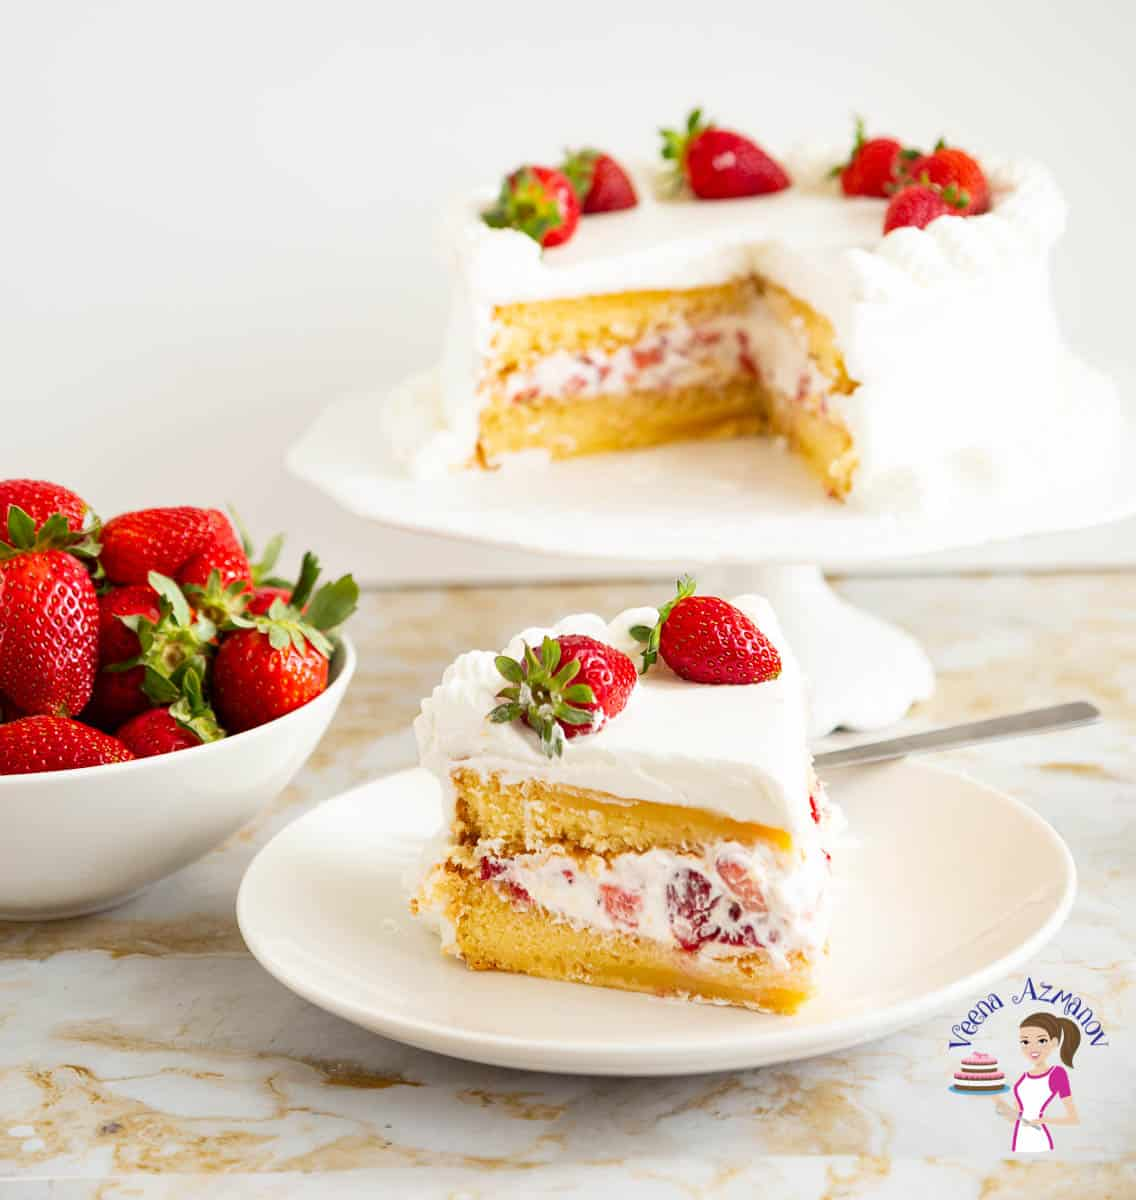 A slice of a Genoise light sponge cake with strawberries and cream.